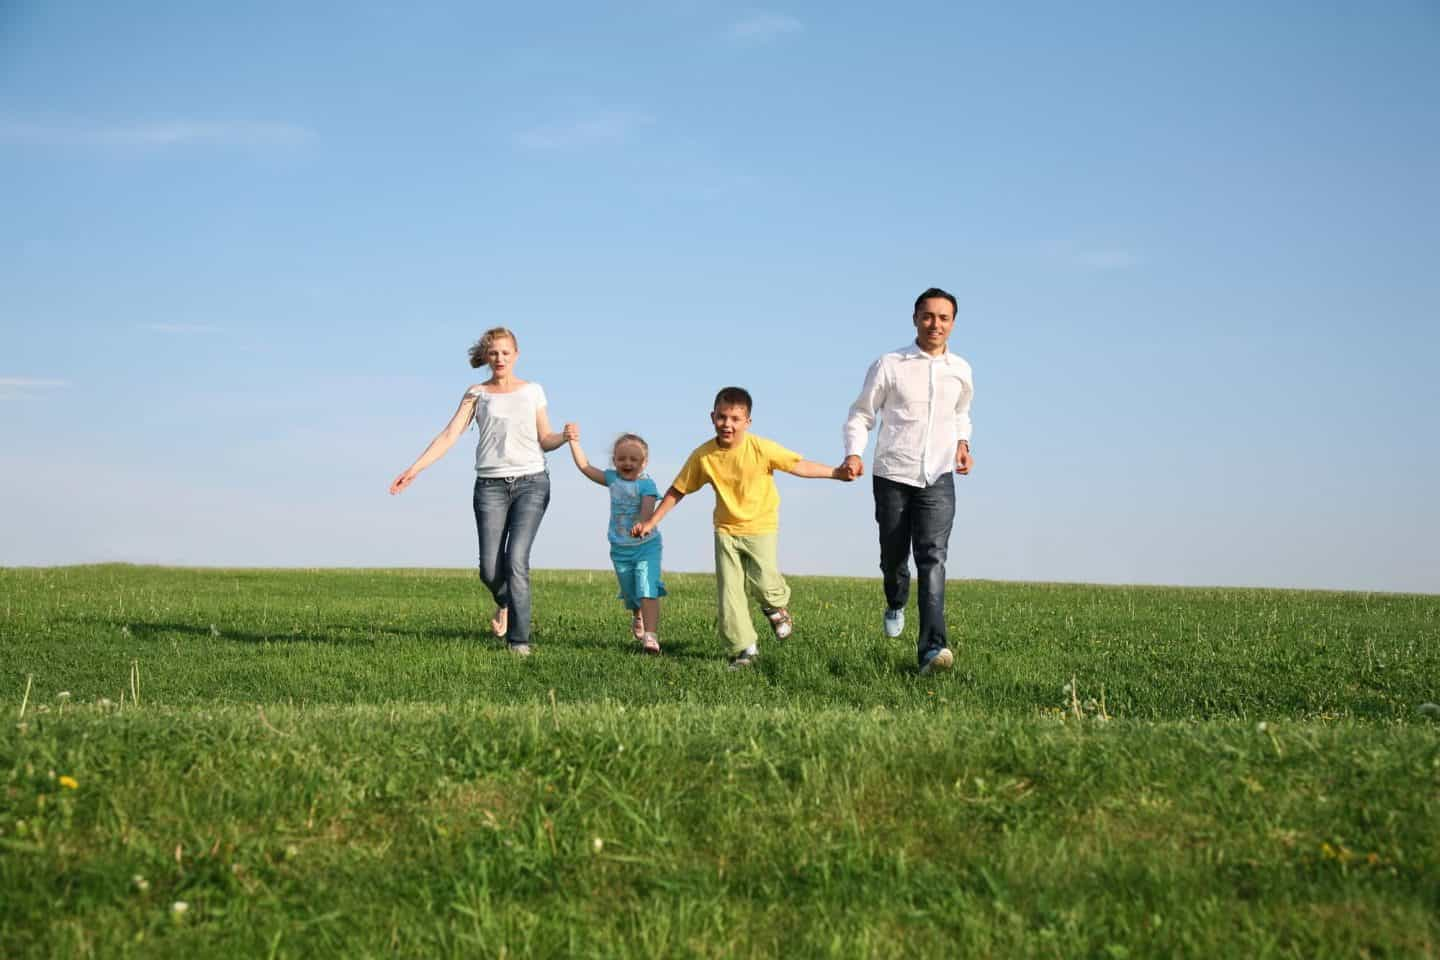 How to Spend More Time Outdoors as a Family